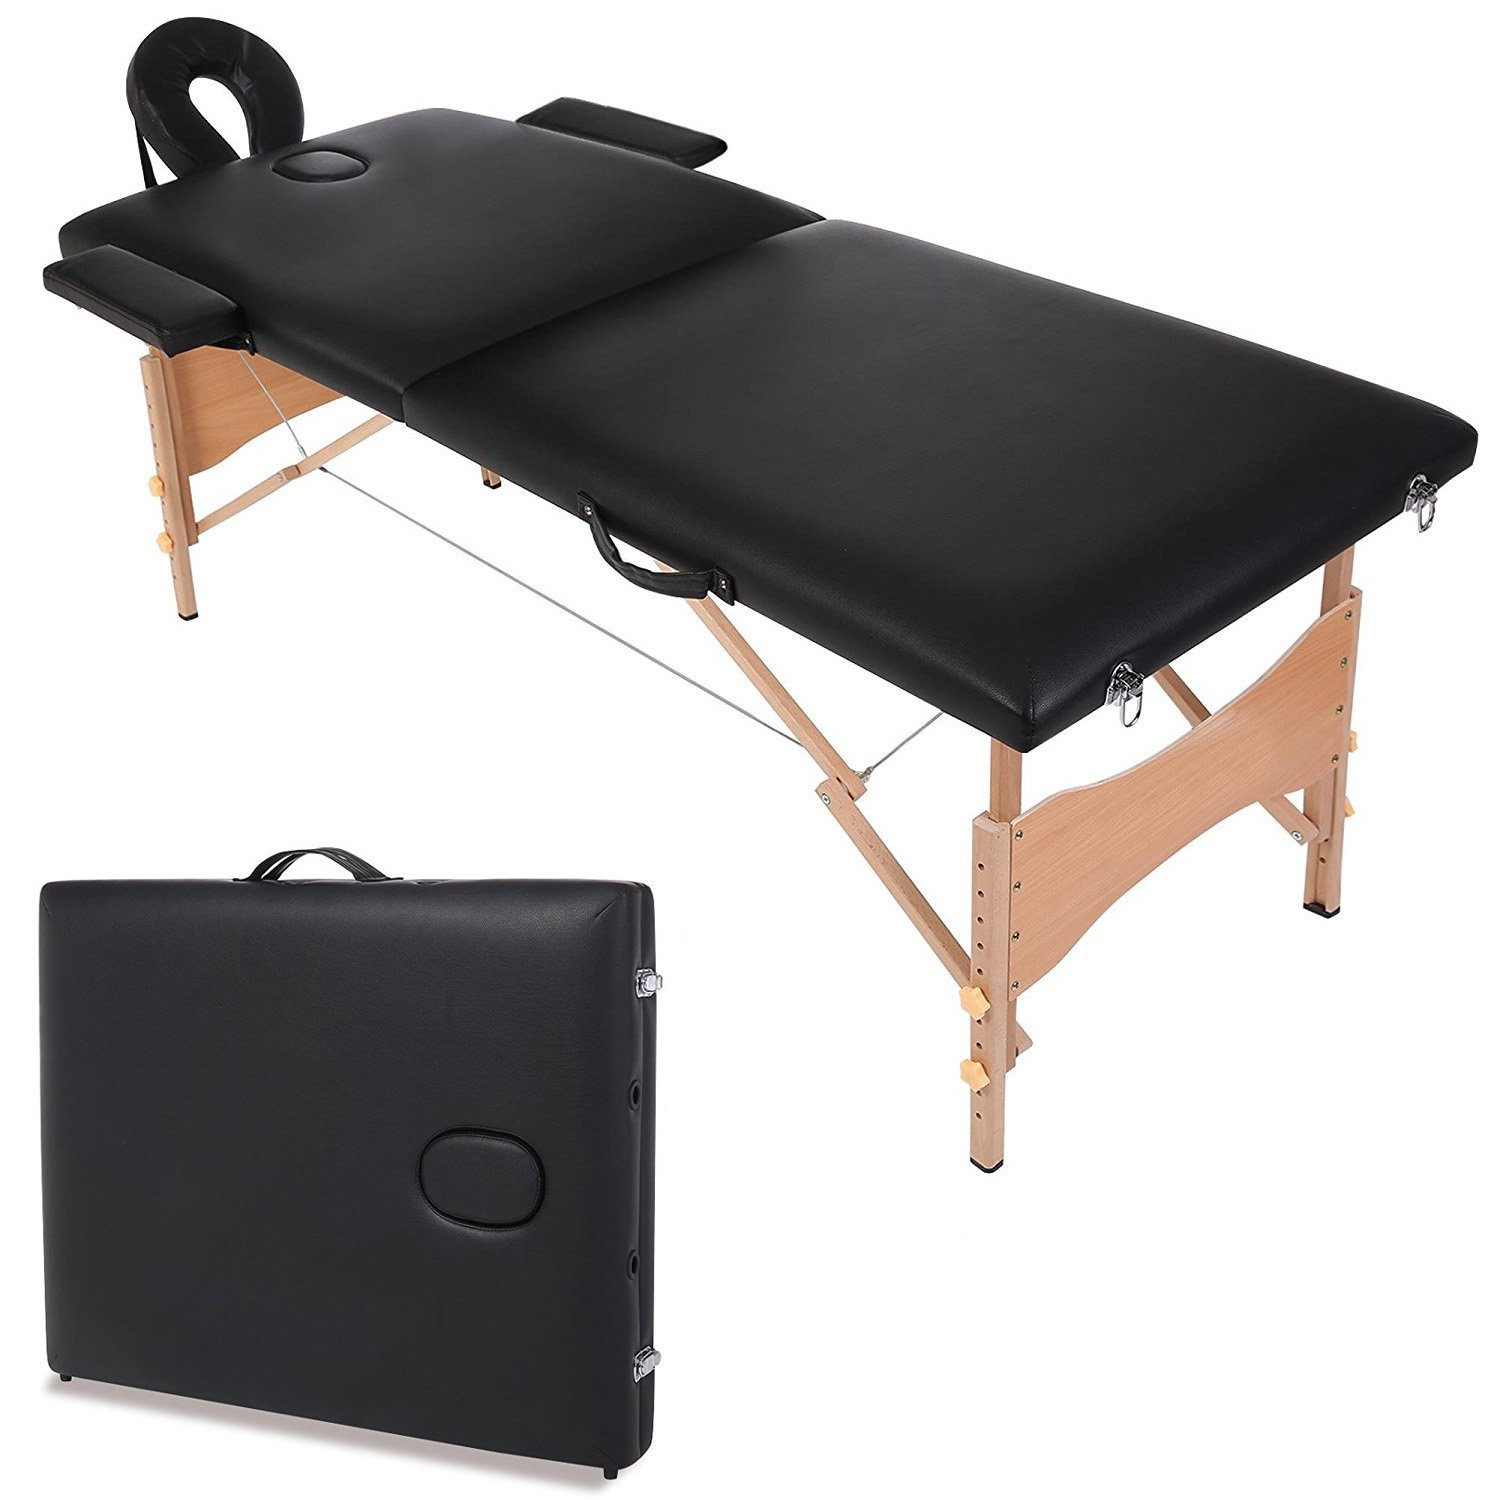 Portable Two-fold Professional Massage Table, Synthetic Leather Comfort Pad SPA Facial/Foot Chair Bed, W/Free Carry Case[US STOCK]